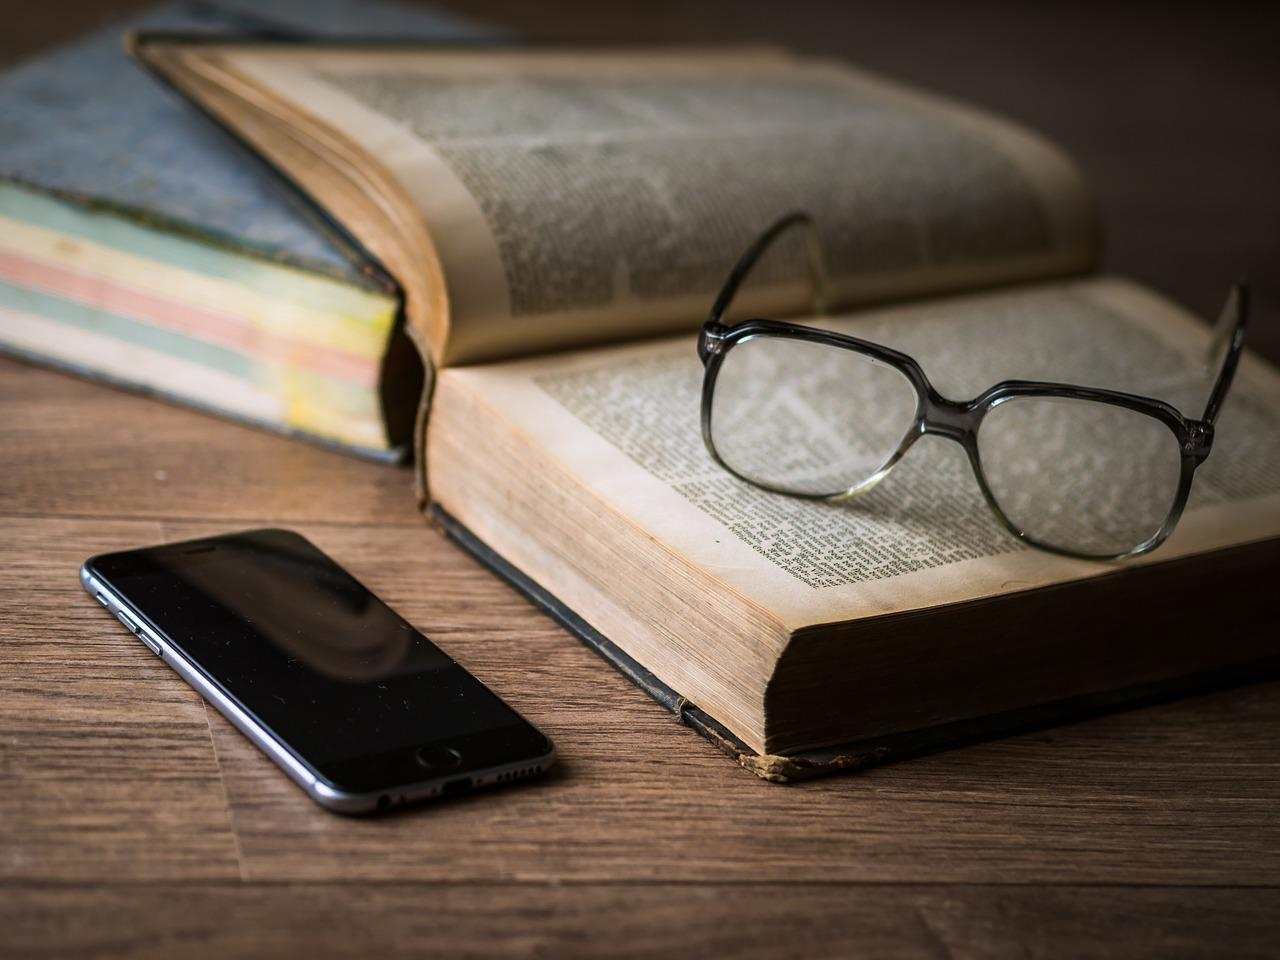 eyeglasses over a book